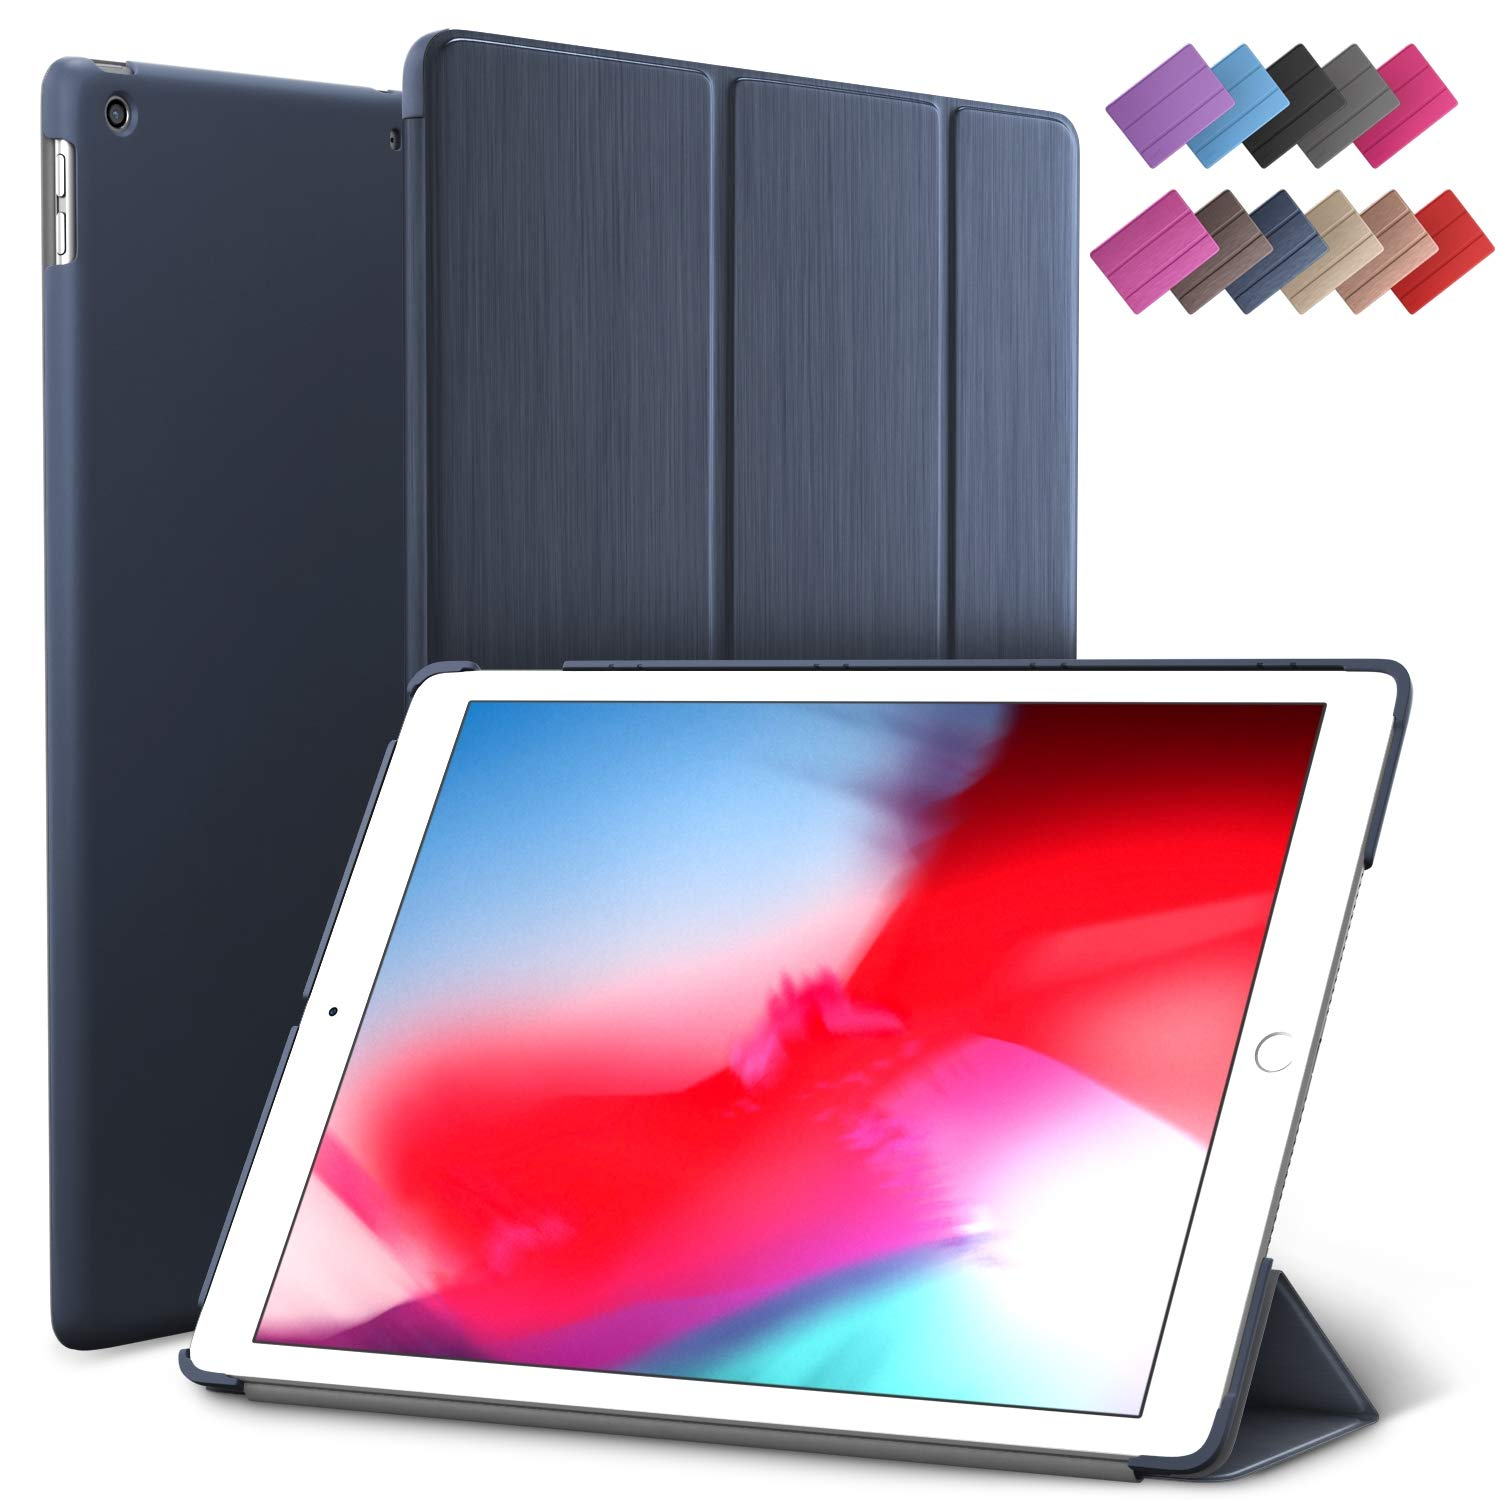 iPad Mini 5 case, ROARTZ Metallic Navy Blue Slim Fit Smart Rubber Coated Folio Case Hard Cover Light-Weight Wake/Sleep for Apple iPad Mini 5th Generation 2019 Model A2133 A2124 A21